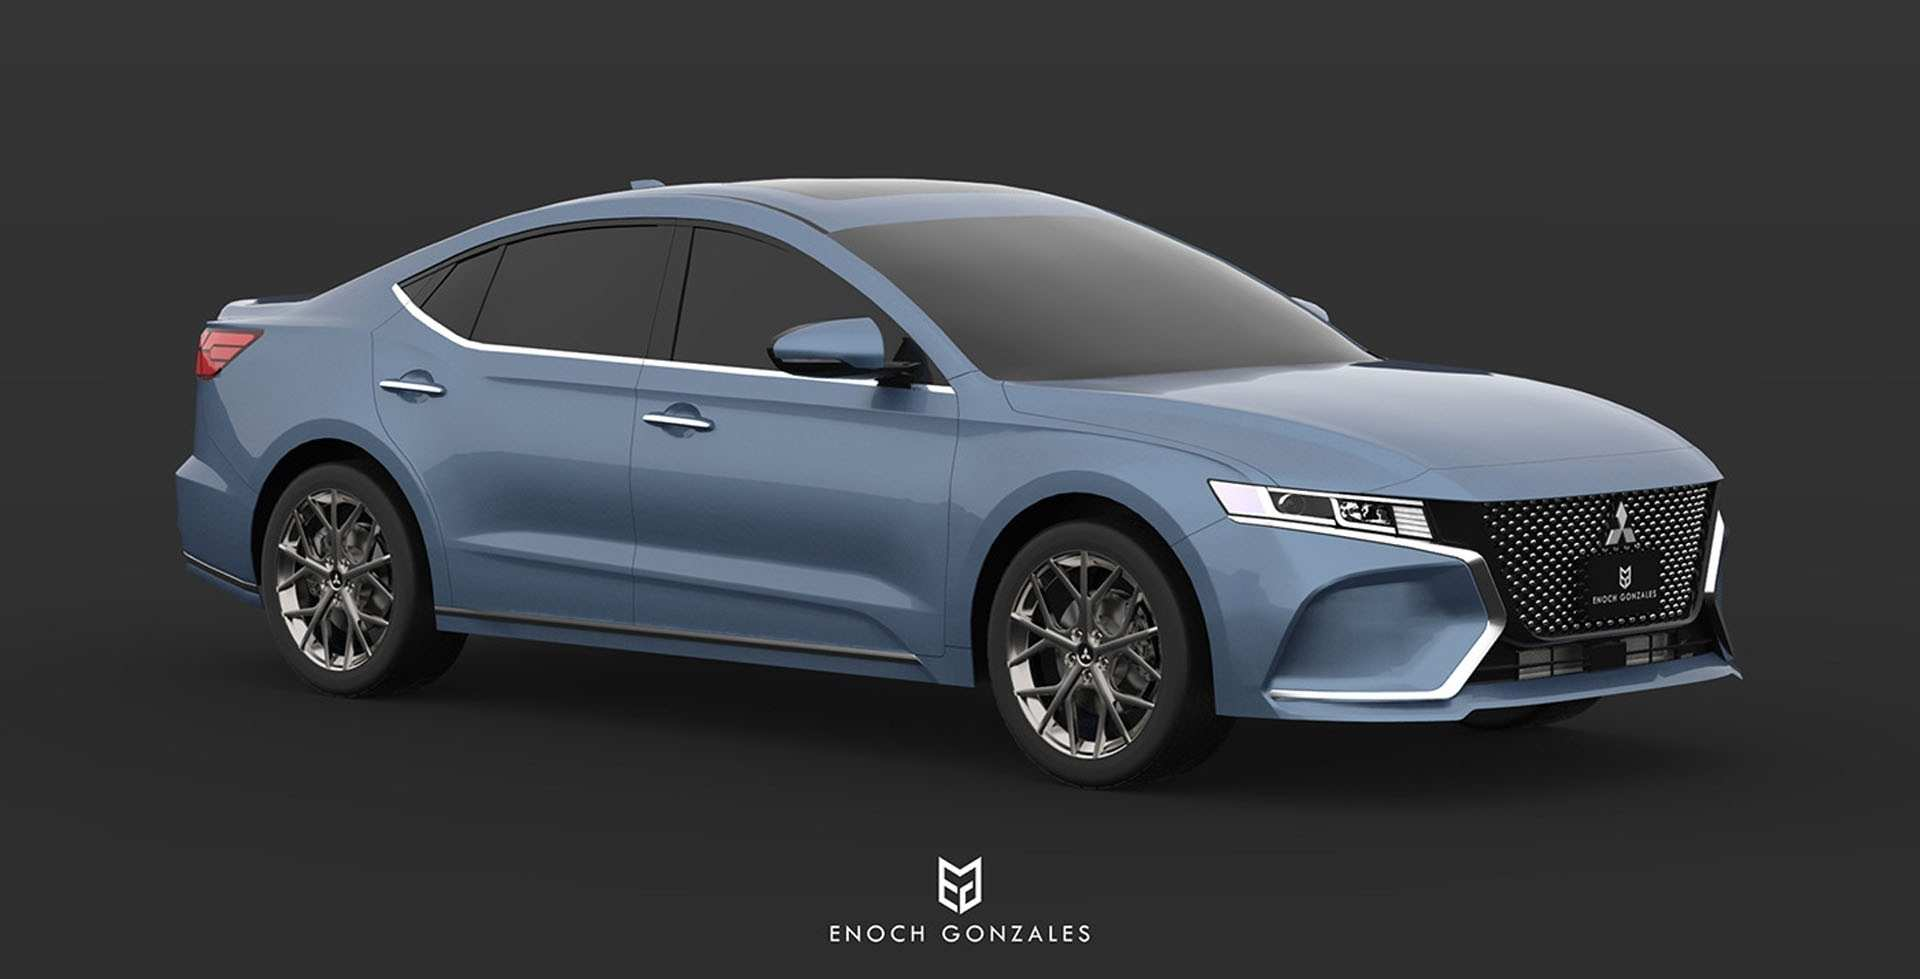 96 All New 2019 Mitsubishi Galant Redesign